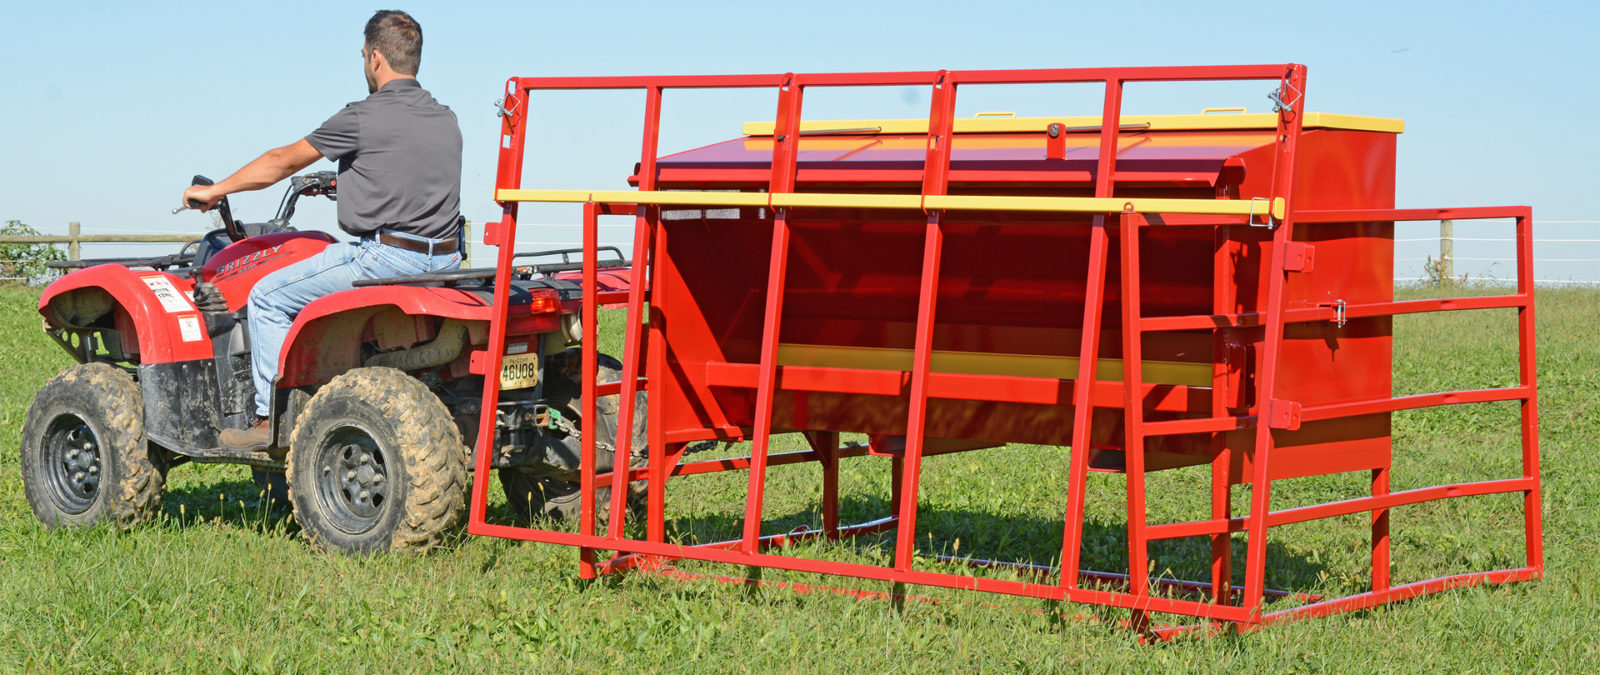 A cattle feeder for creep feeding